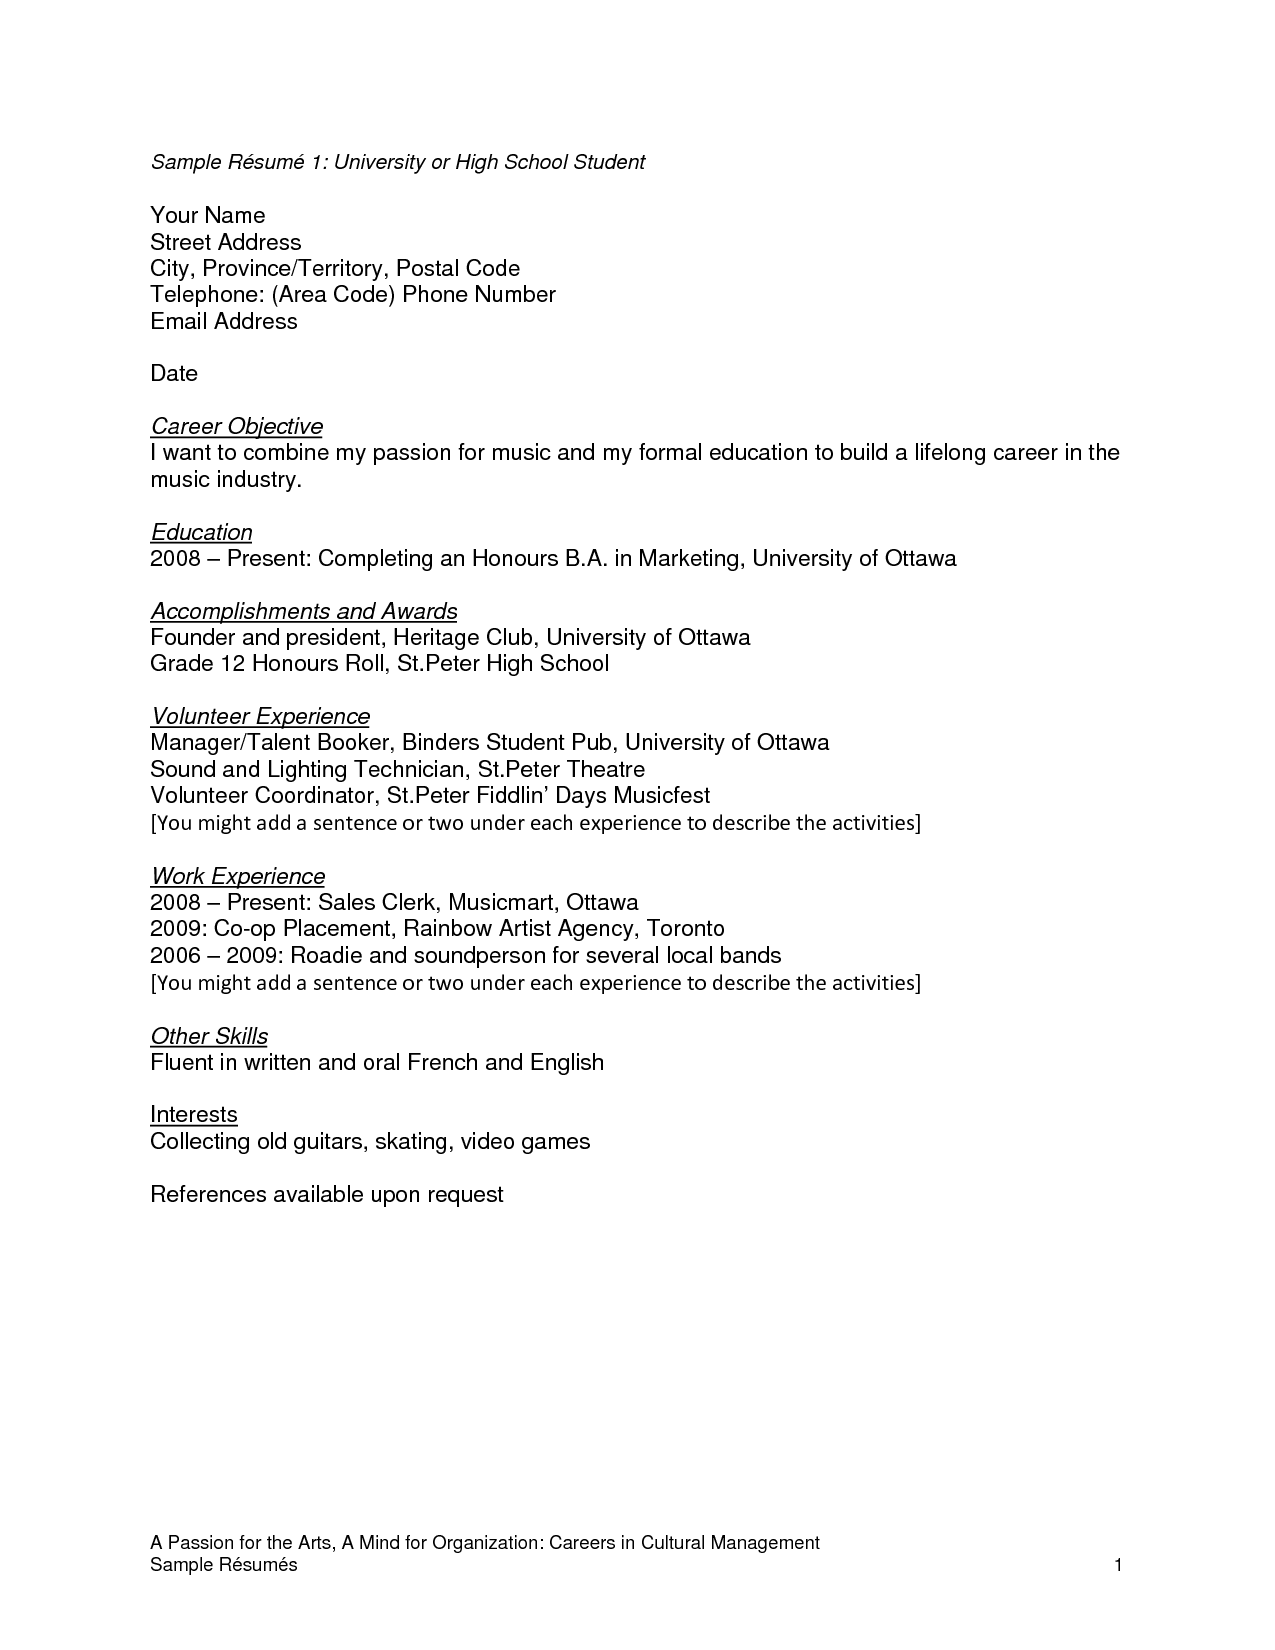 resume samples for high school students flickr photo sharing httpwww - Sample Of High School Student Resume